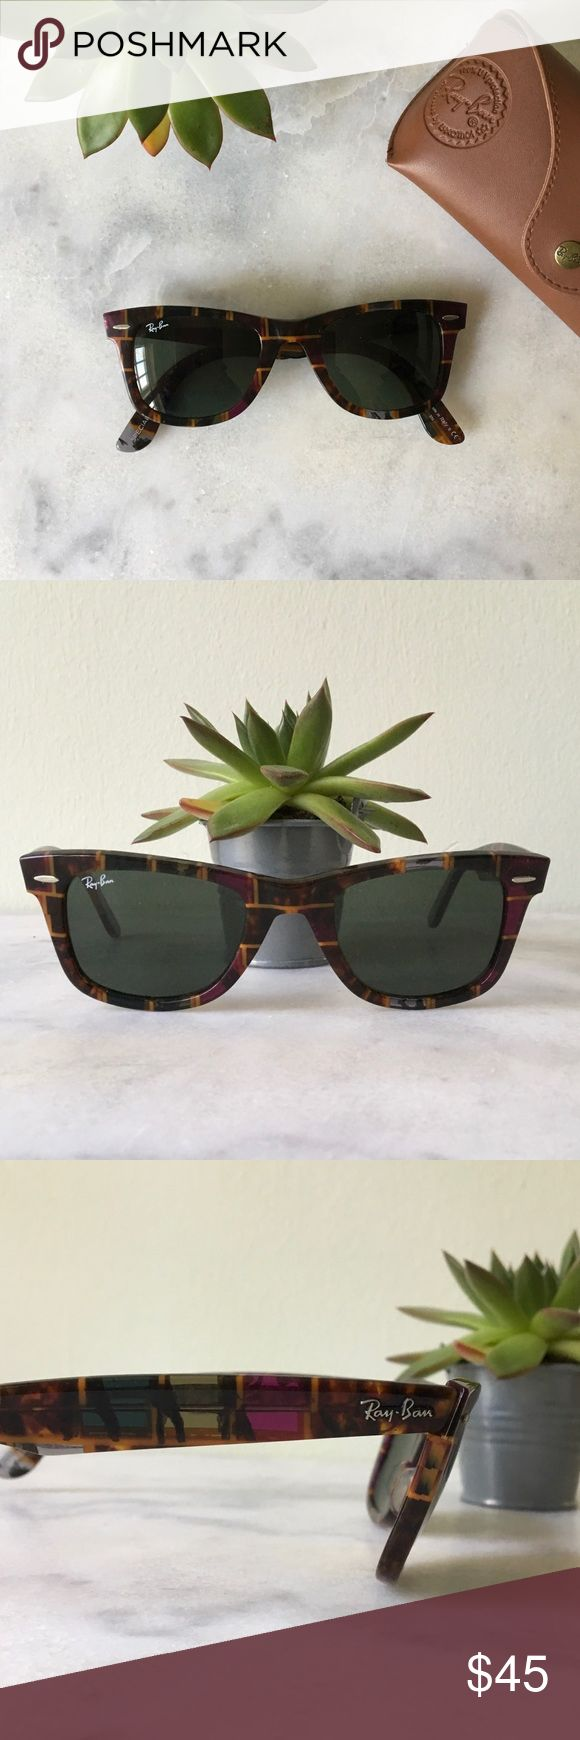 Ray ban Sunglasses / Wayfarer Ray ban sunglasses / special series #7 / great condition / includes case / fun pattern / NOTE: tiny scratch that is not noticeable on right lense, see last picture Ray-Ban Accessories Glasses